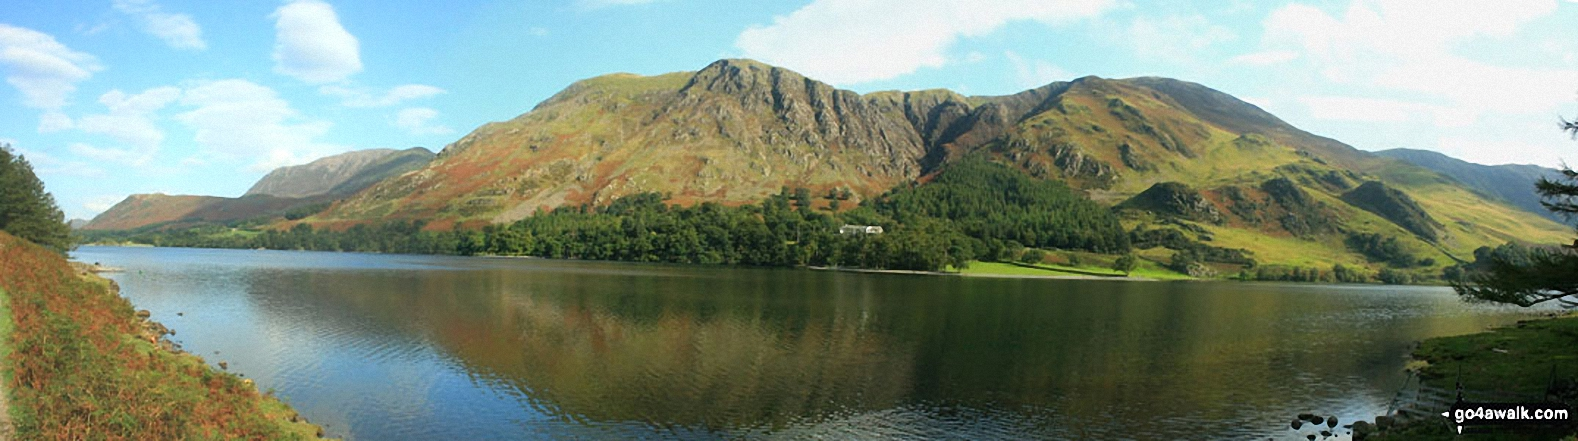 High Snockrigg and Robinson across Buttermere